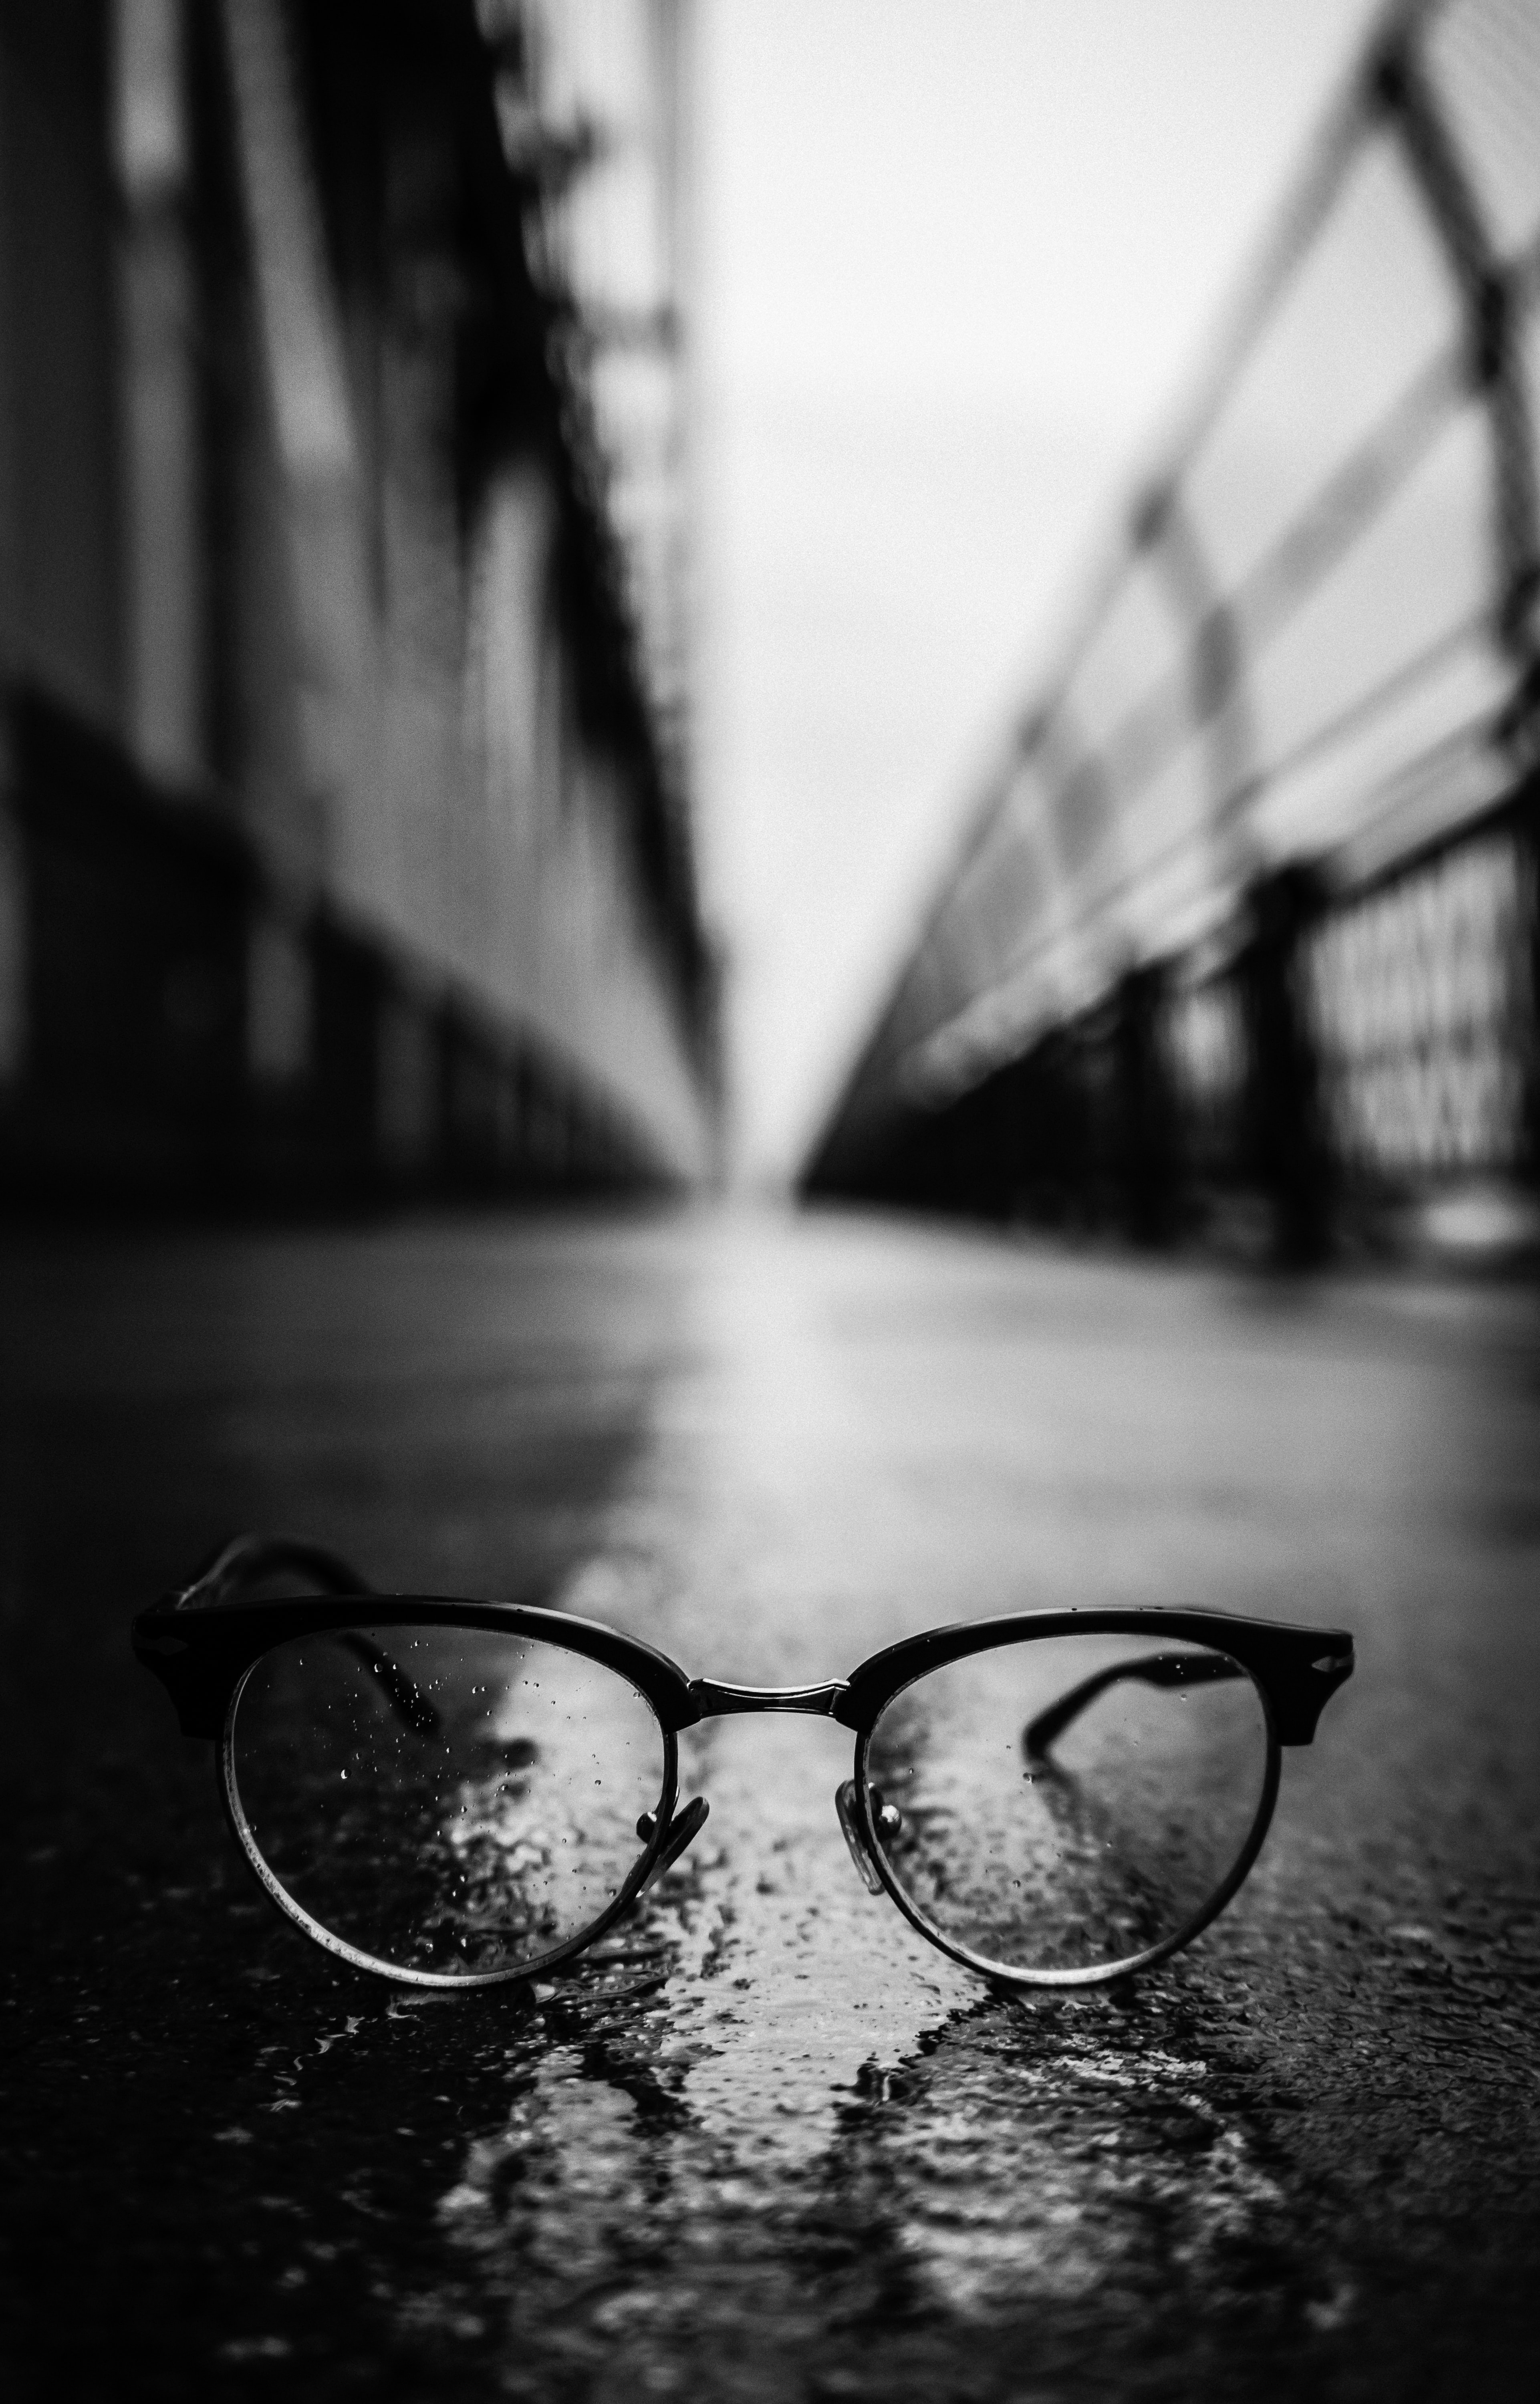 gray scale photography of Clubmaster-style sunglasses on road